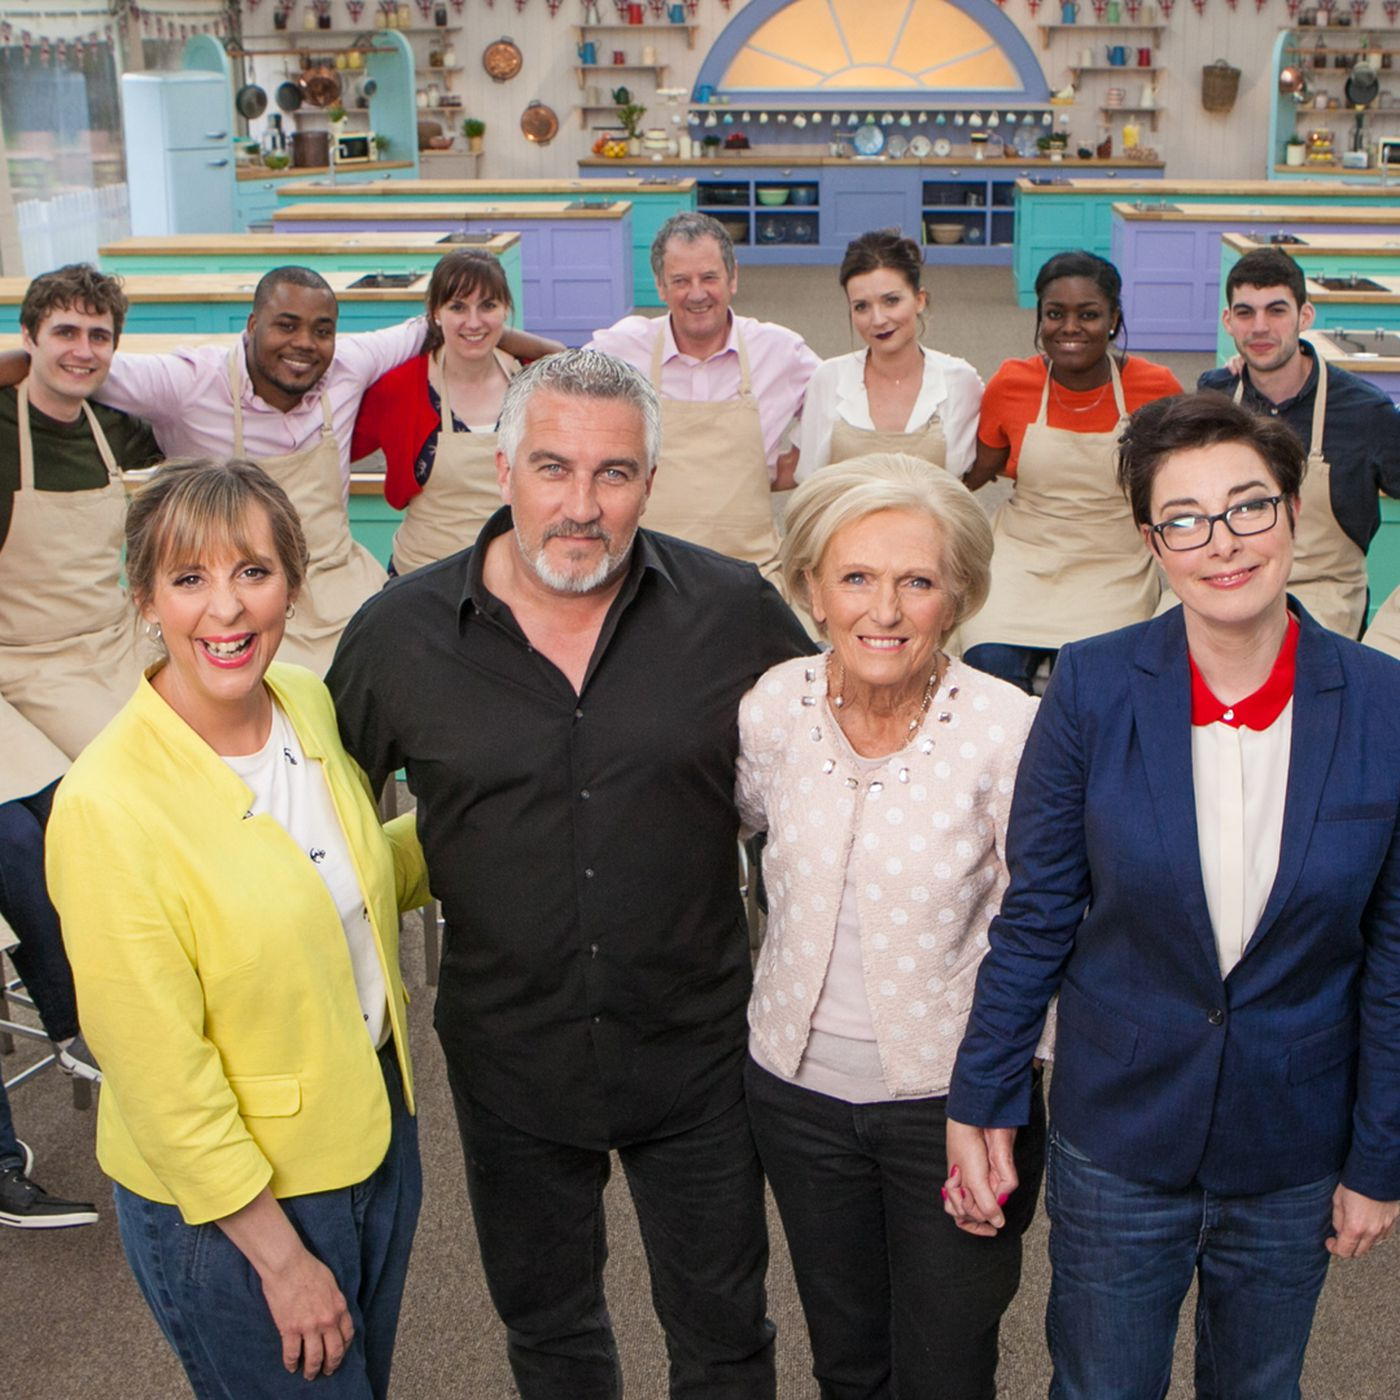 Pbs Great British Baking Show 2020.The Great British Baking Show And The Value Of Small Stakes